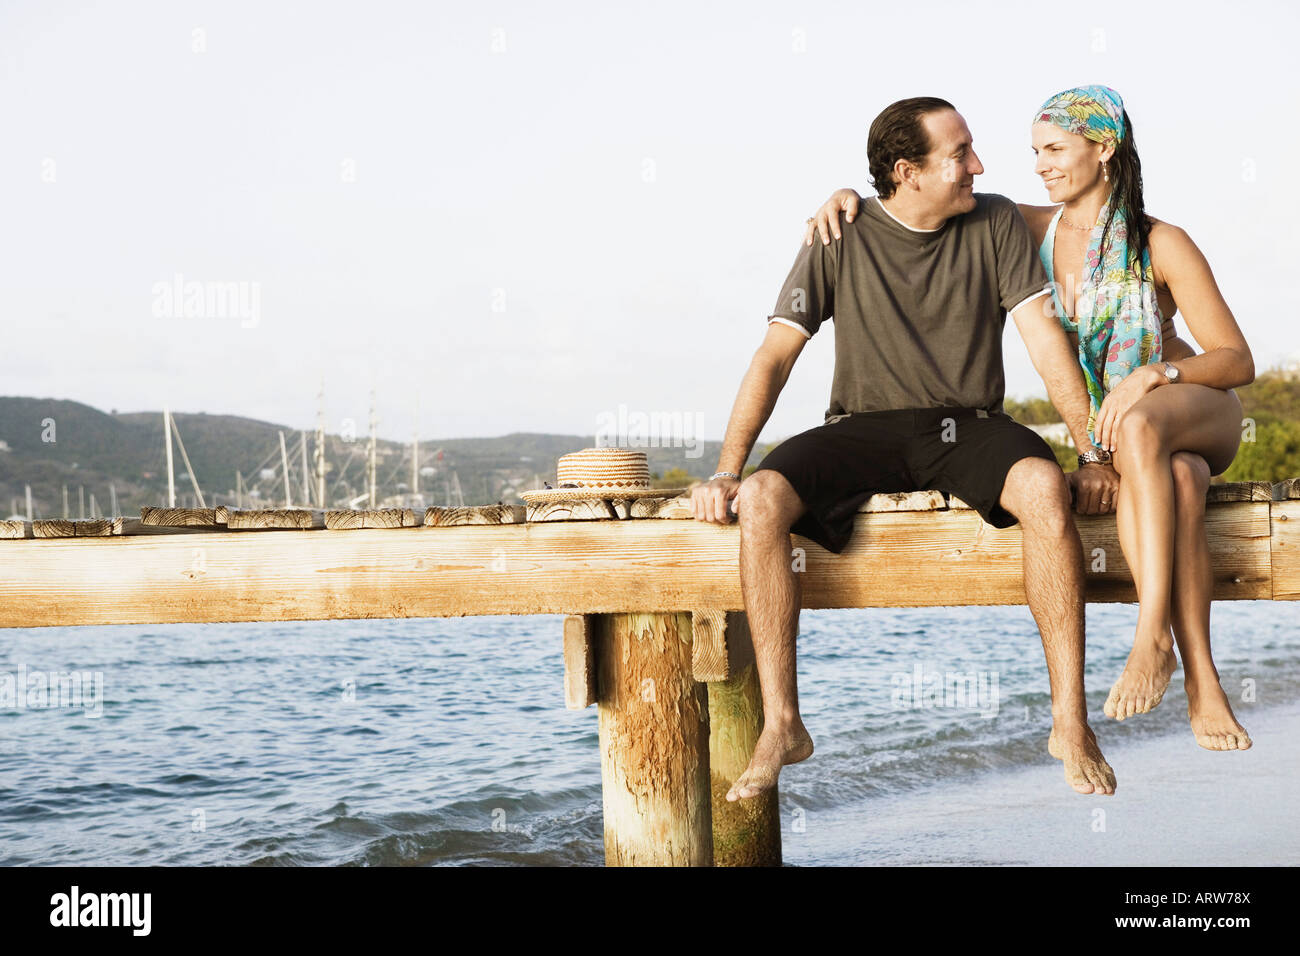 Mid adult woman with her arm around a mid adult man sitting on a jetty - Stock Image